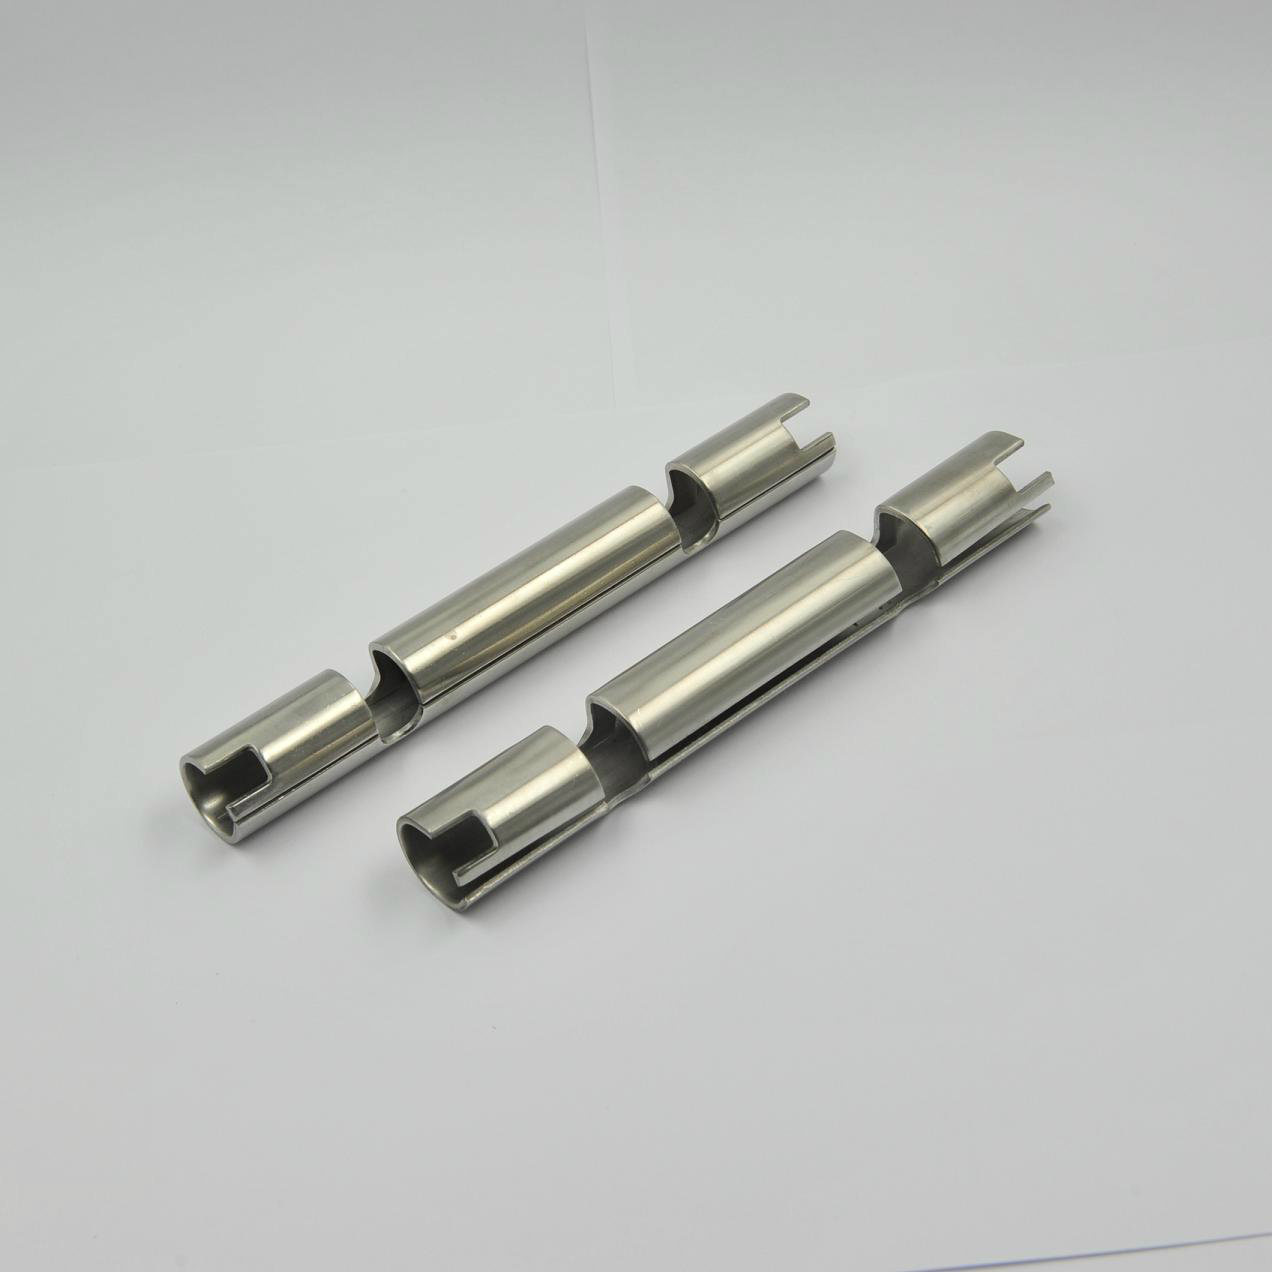 Stainless Steel Stamping Parts for Repairing Clamp